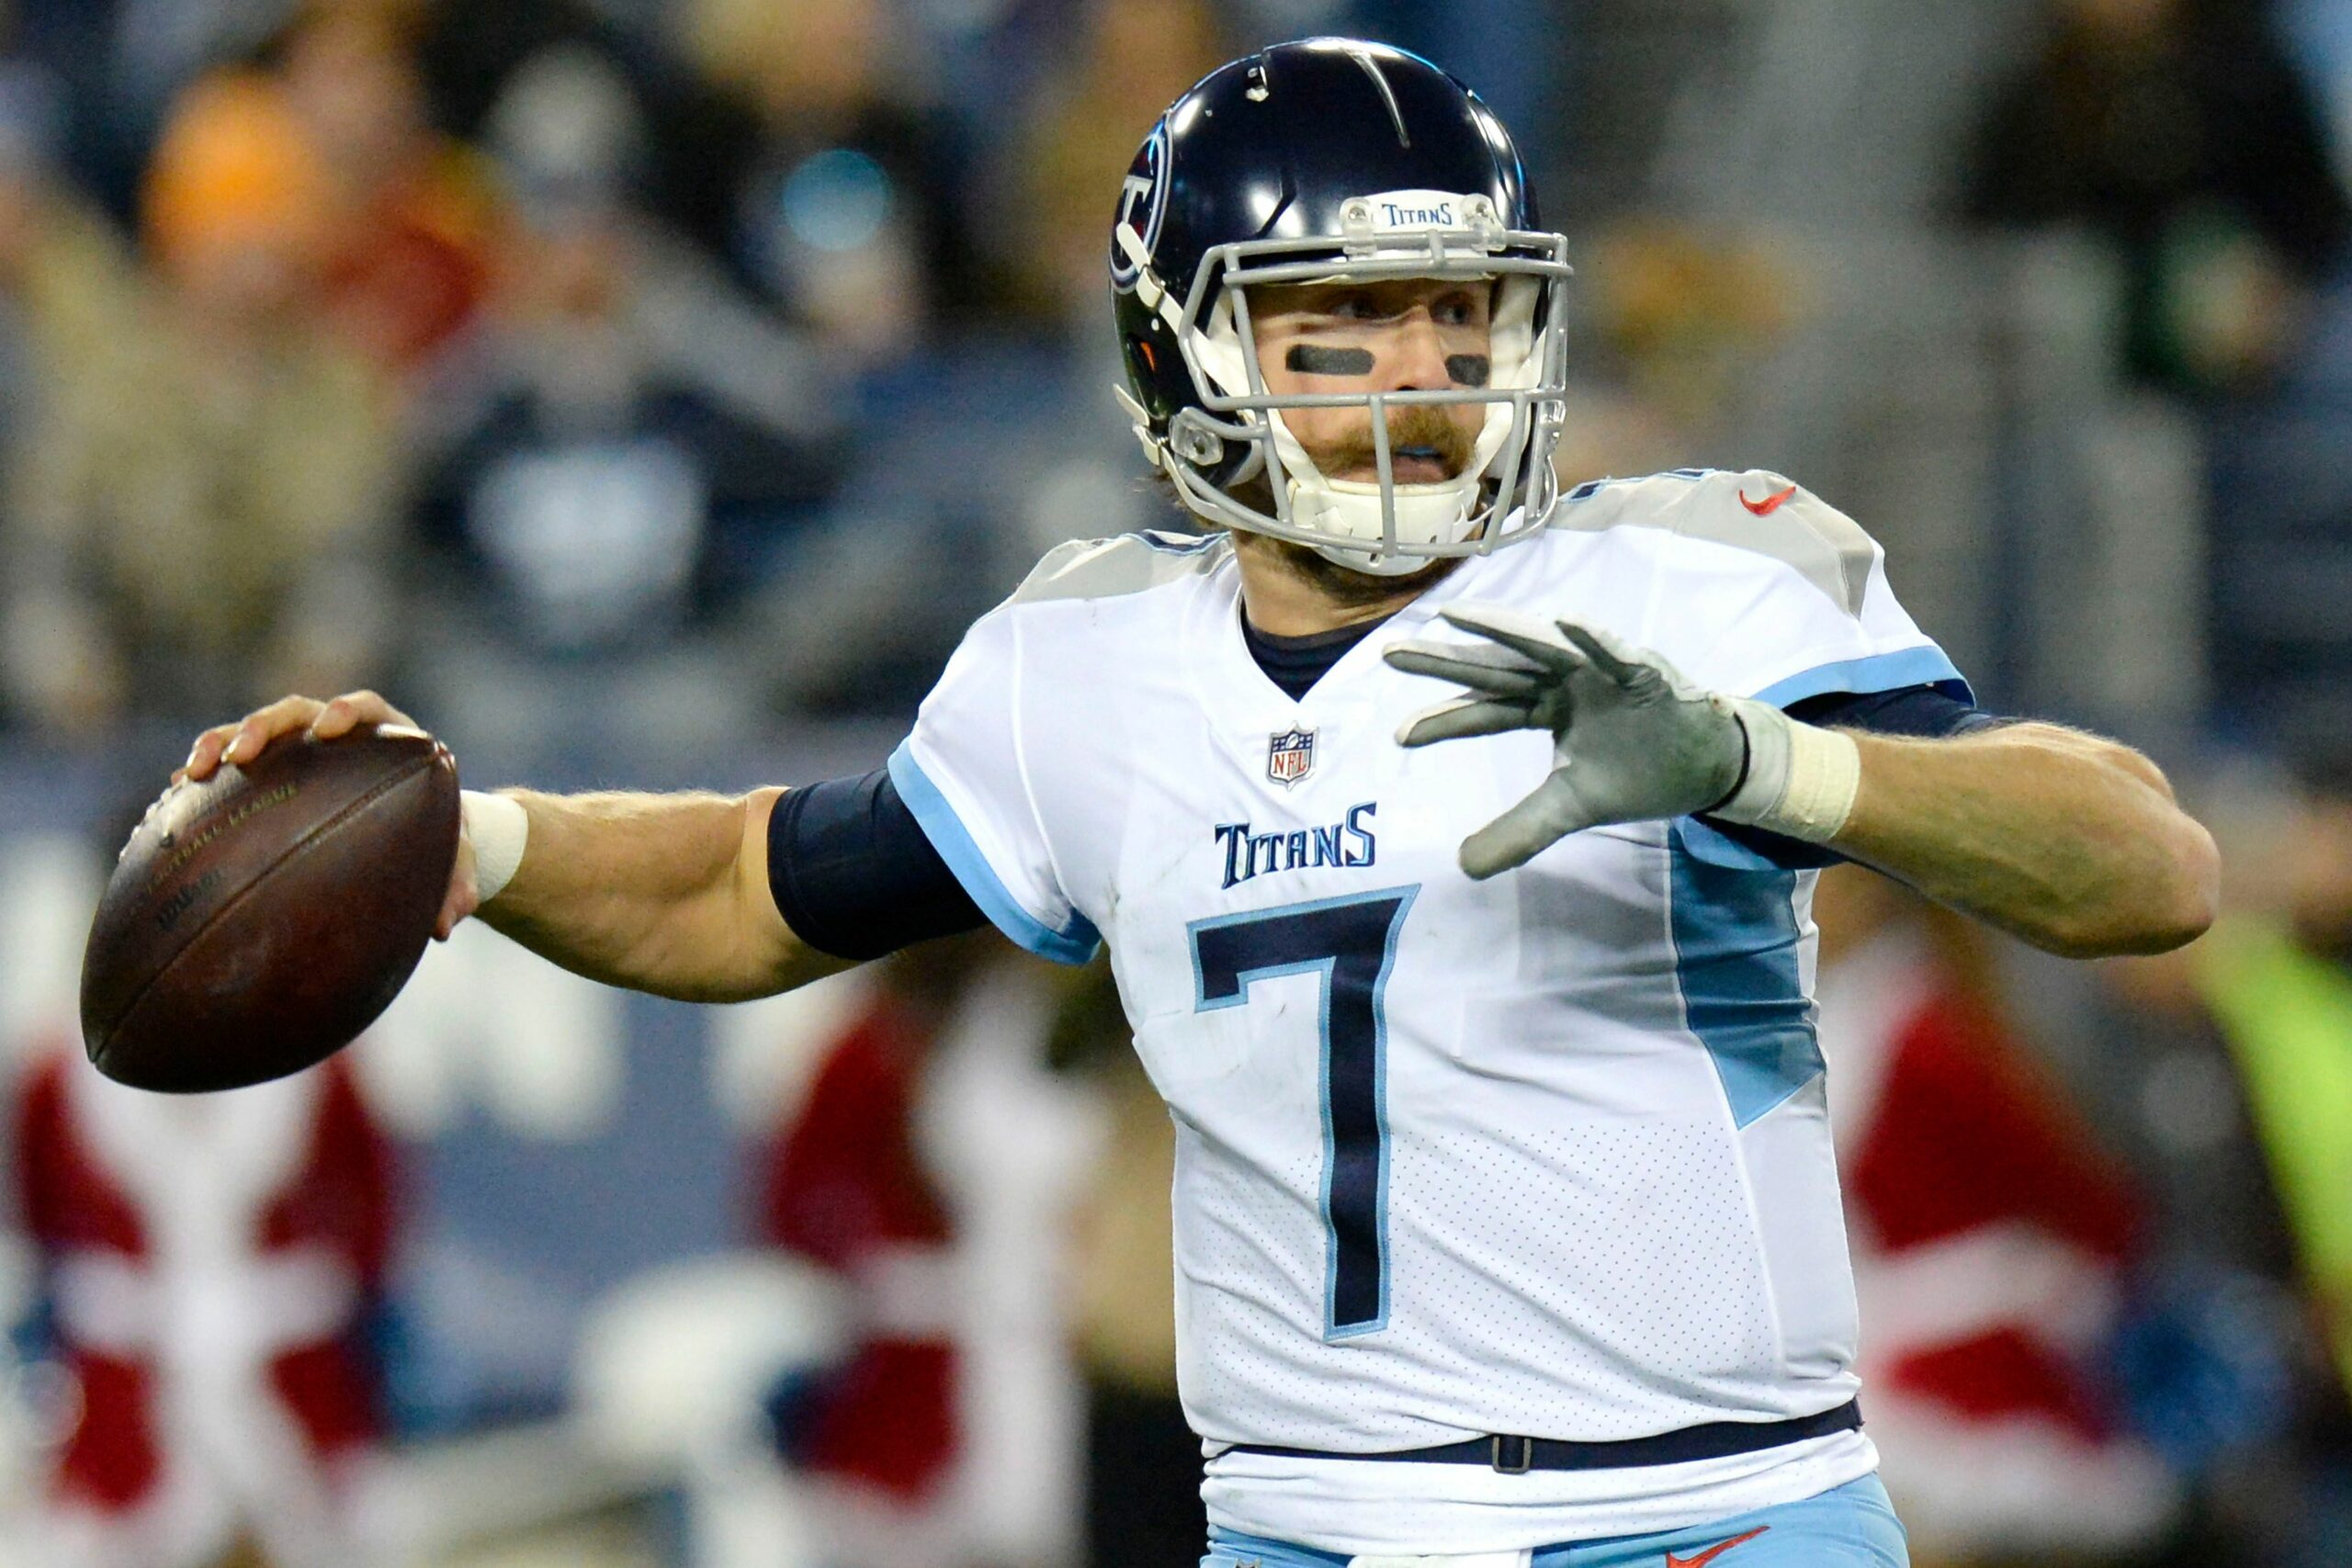 QB Blaine Gabbert re-signing 1-year,  $2.5 million deal with Tampa Bay Buccaneers